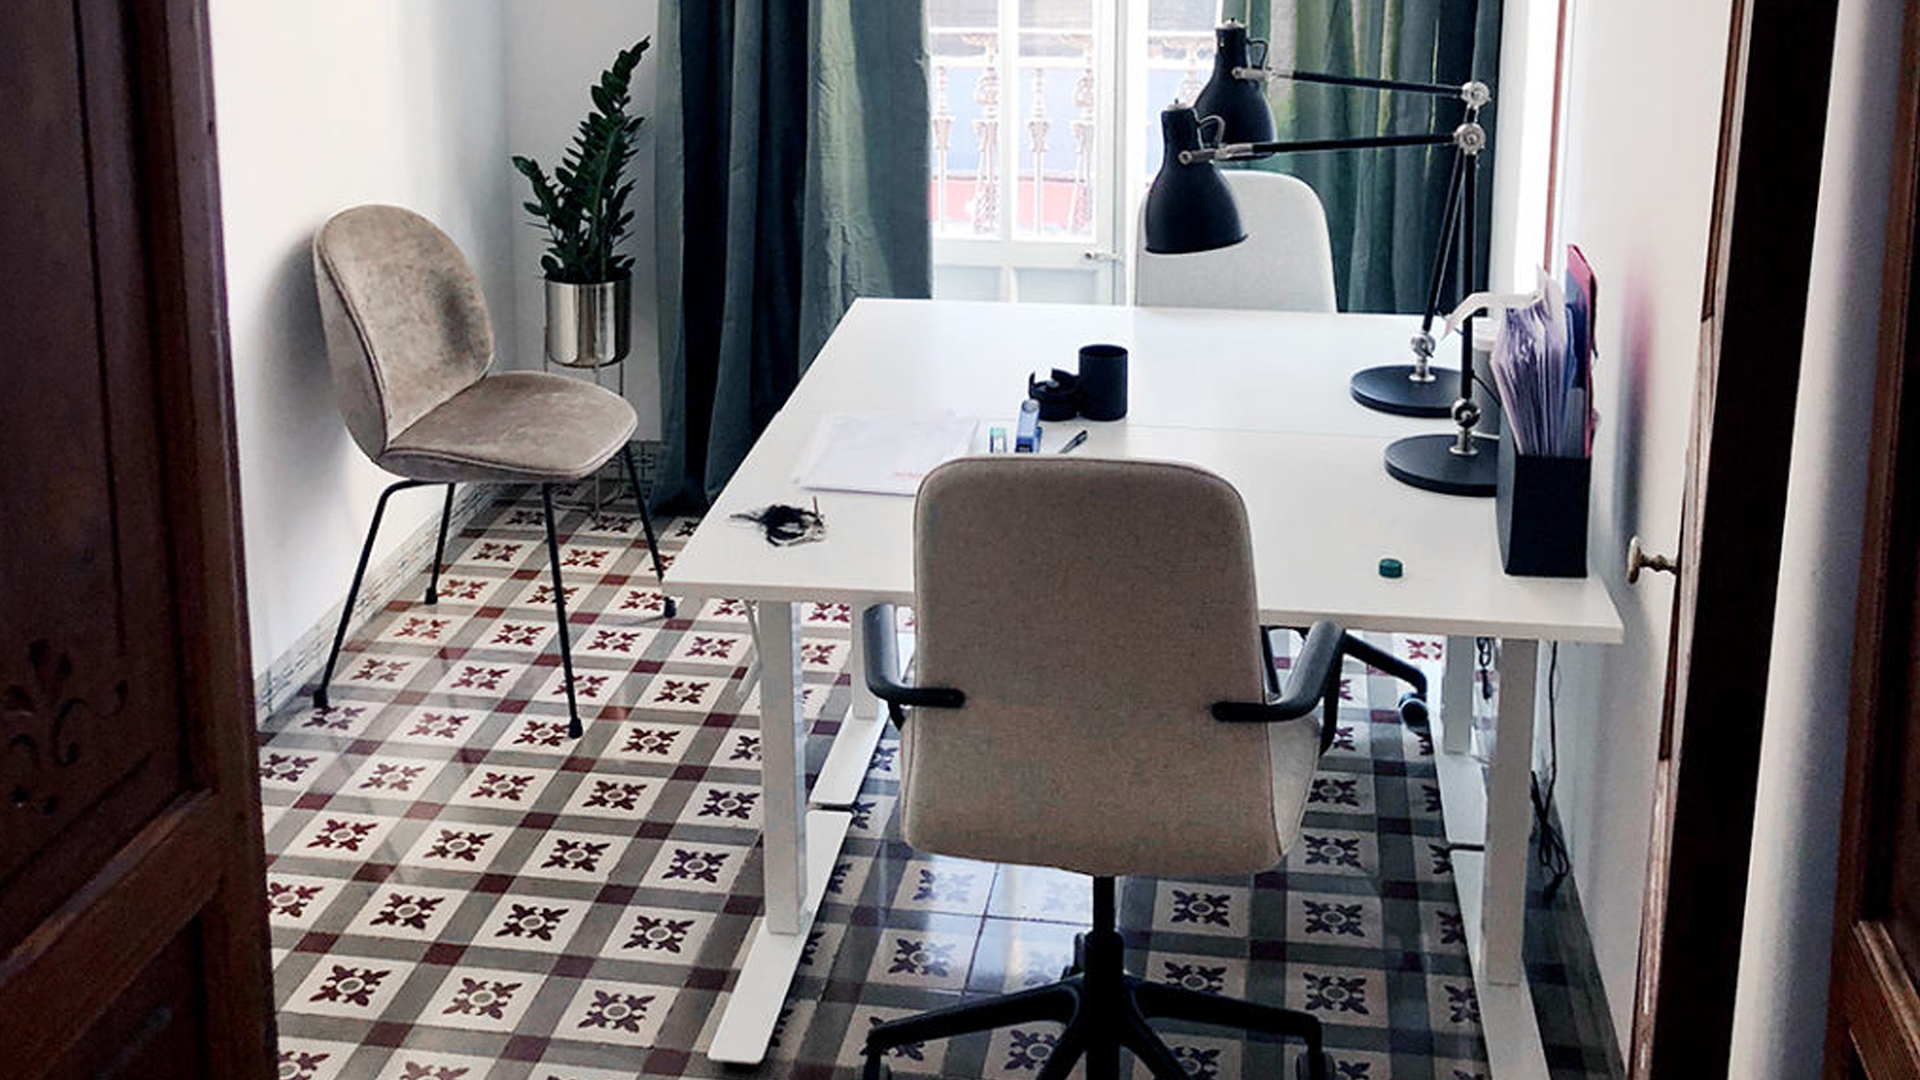 Workation palma coworking place